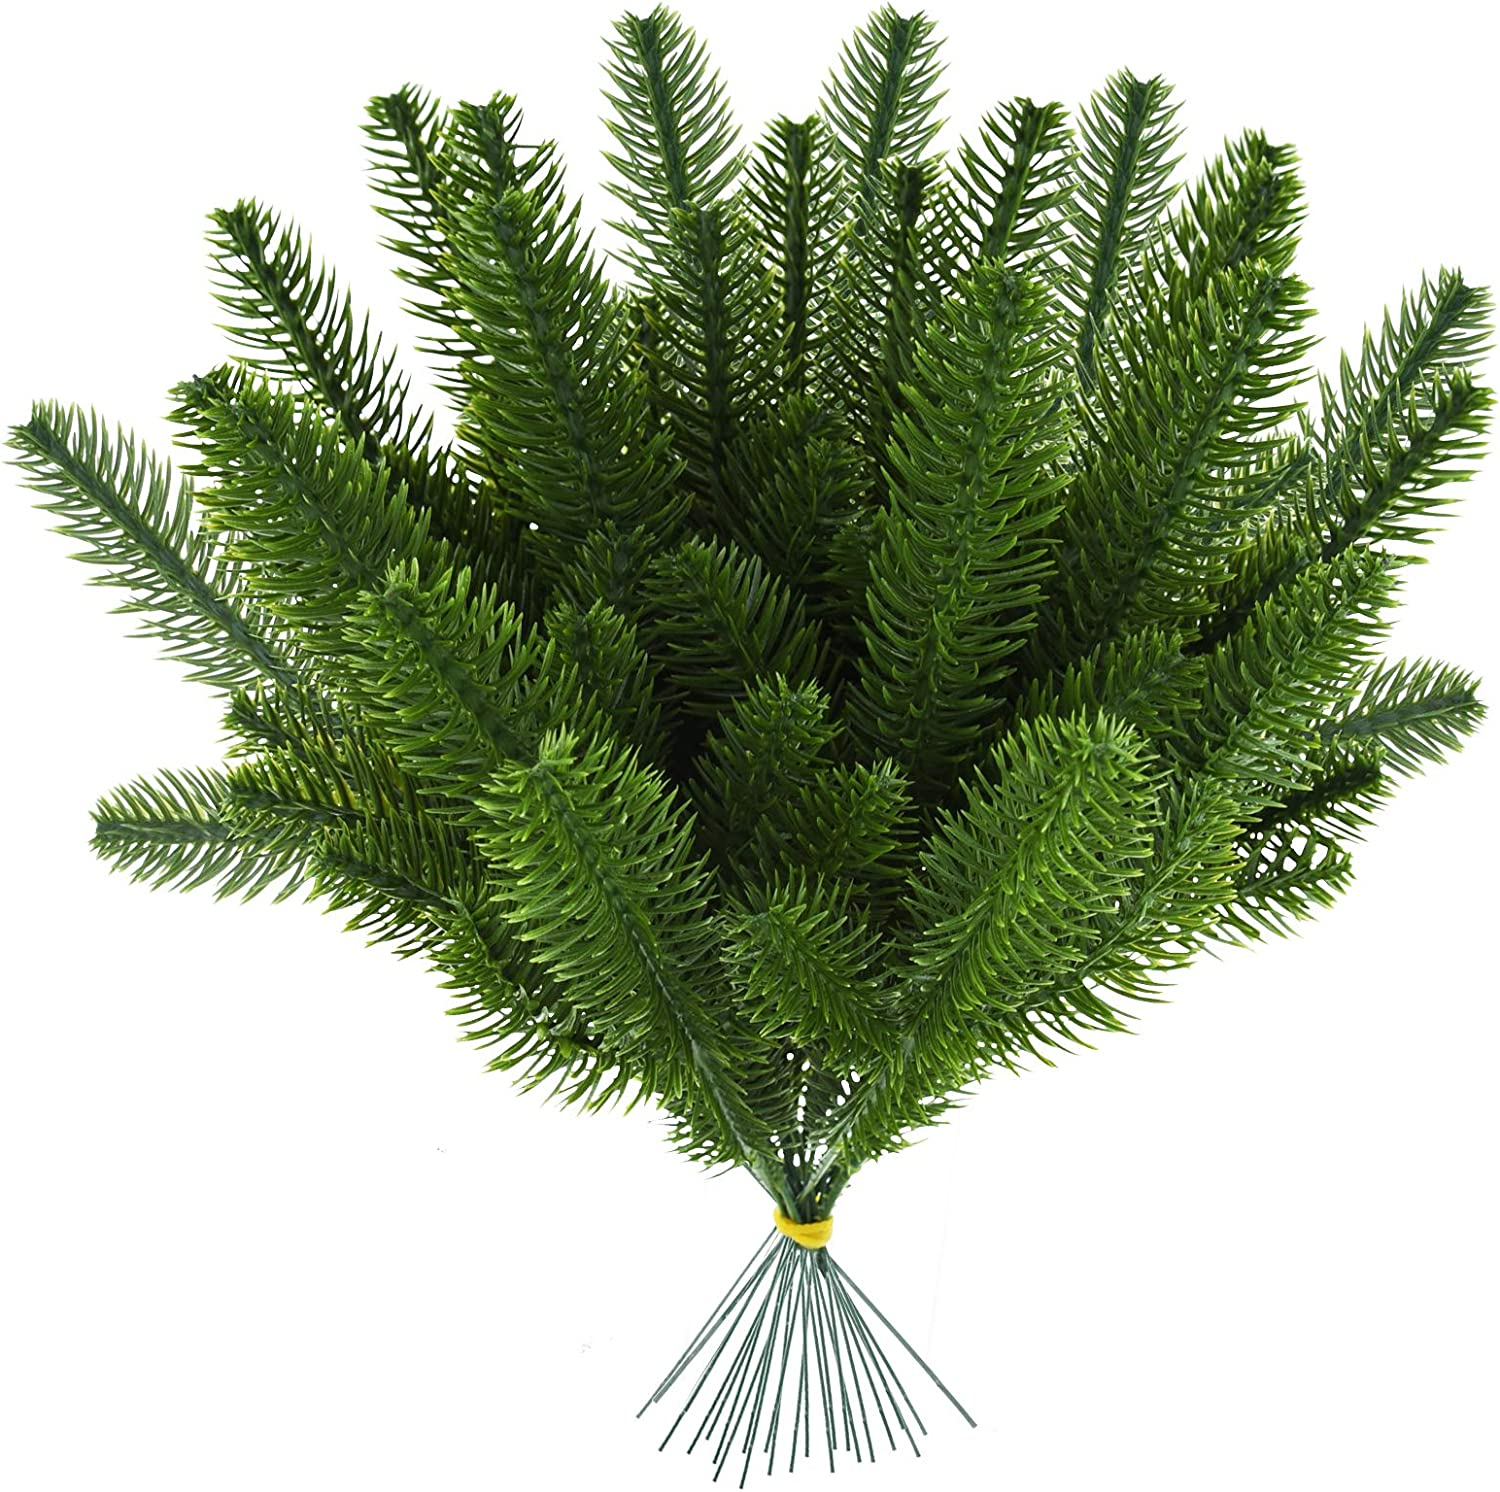 Marrywindix 40pcs Artificial Pine Branches Pine Picks Green Leaves Pine Needles for Garland Wreath Christmas Holiday Home Garden Decor